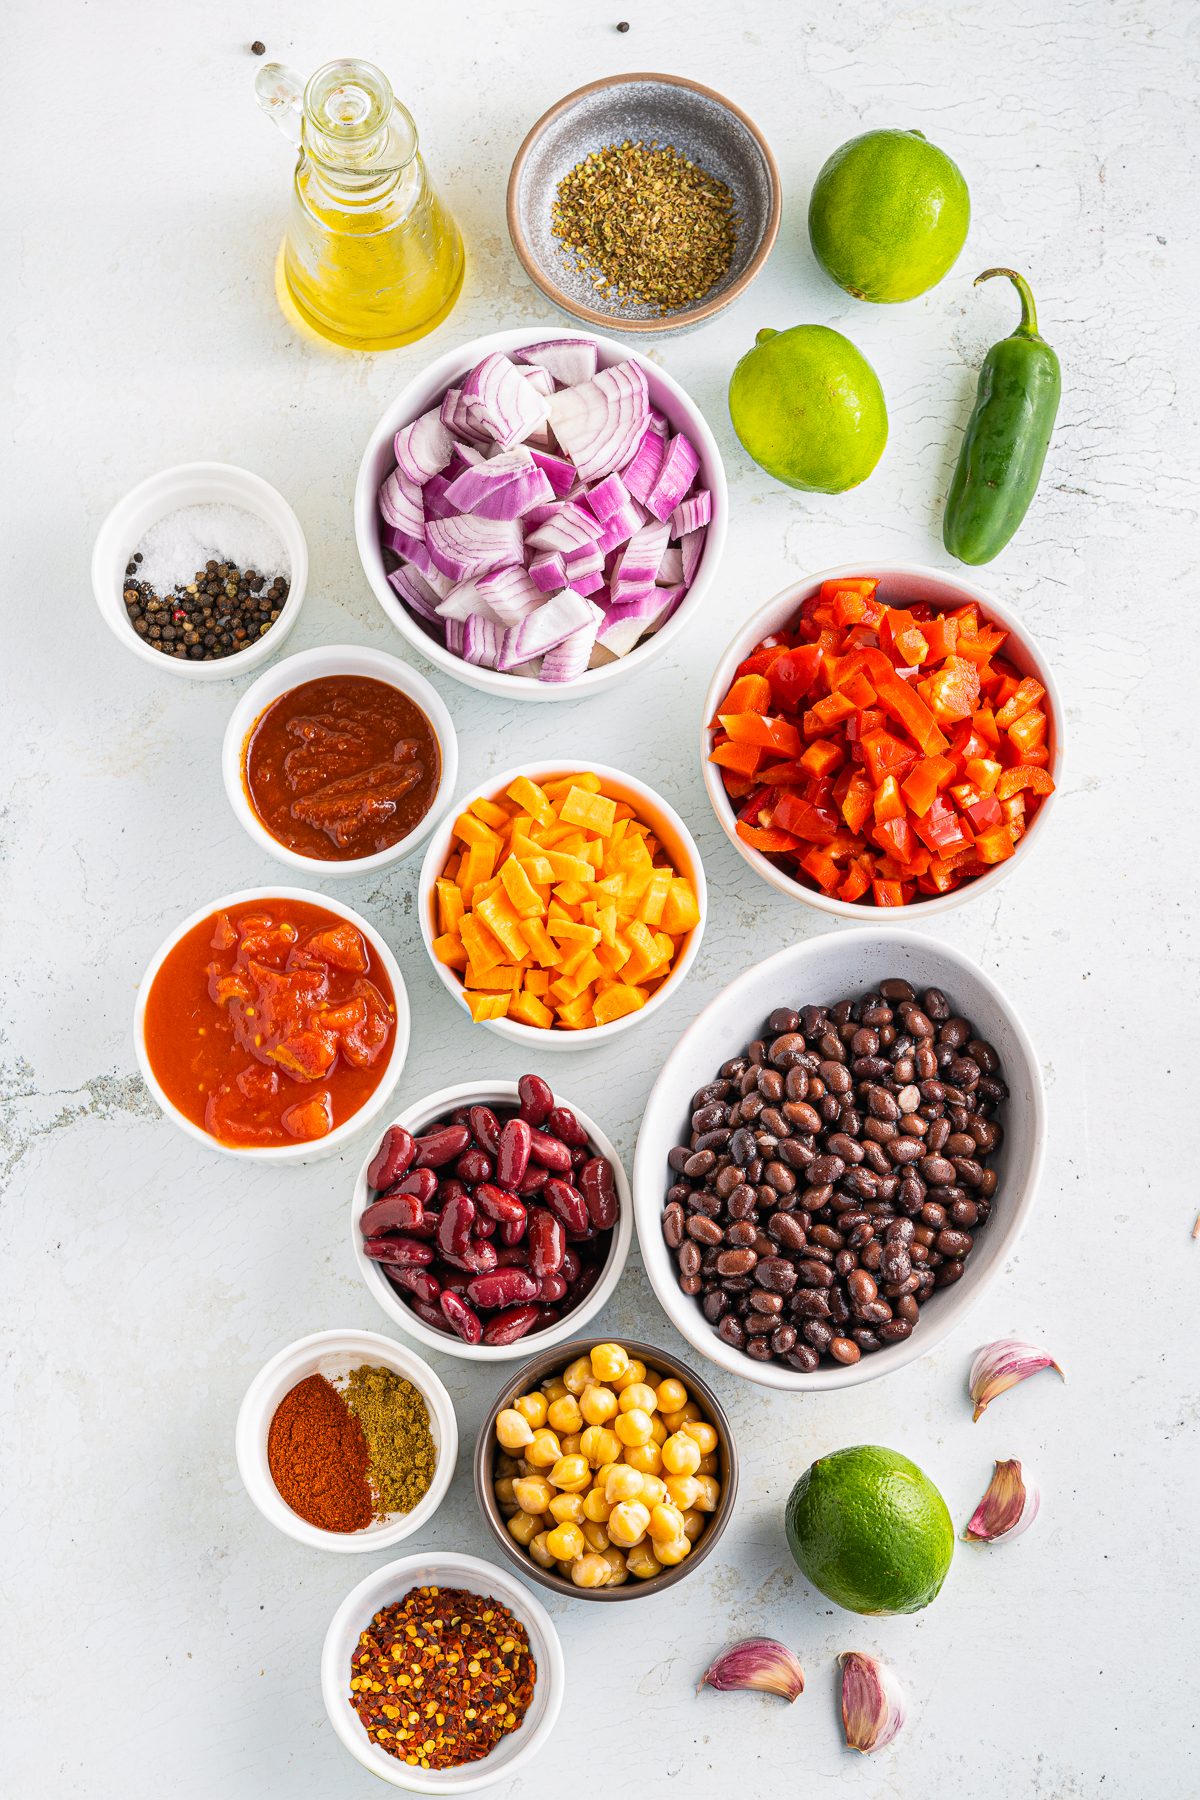 Ingredients needed to make a Vegetarian Chilii Recipe.